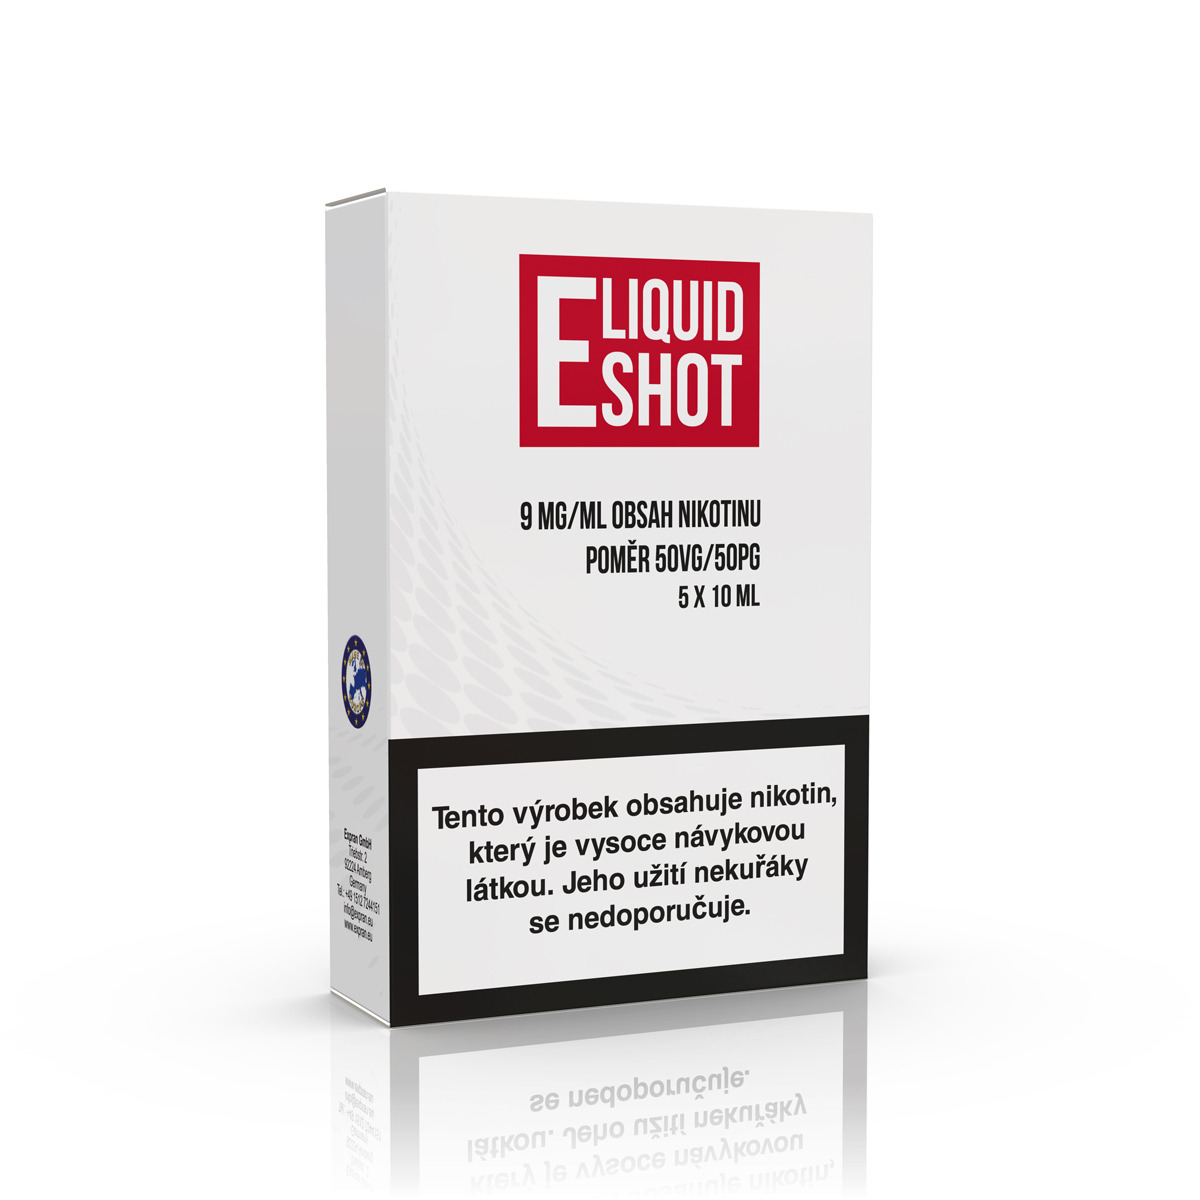 5 pack E-Liquid Shot Booster 50PG/50VG 9 mg/ml